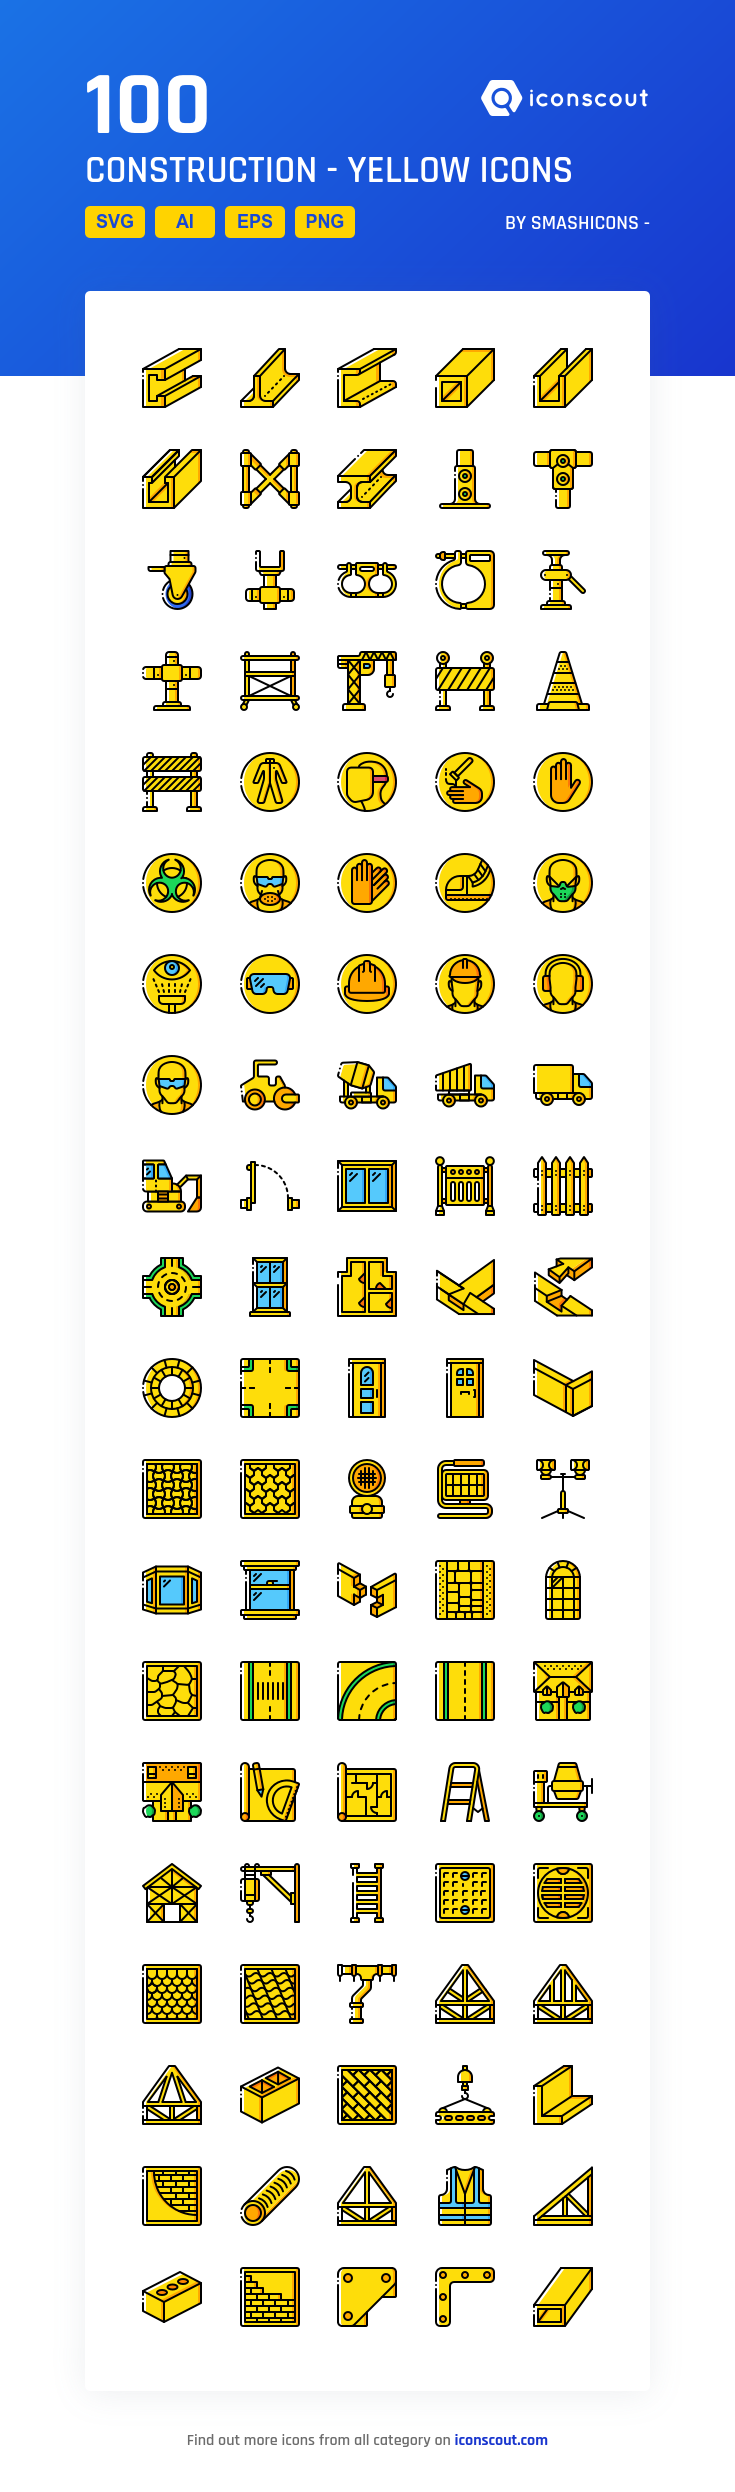 Construction Yellow Icon Pack 100 Filled Outline Icons Icon Icon Pack Construction